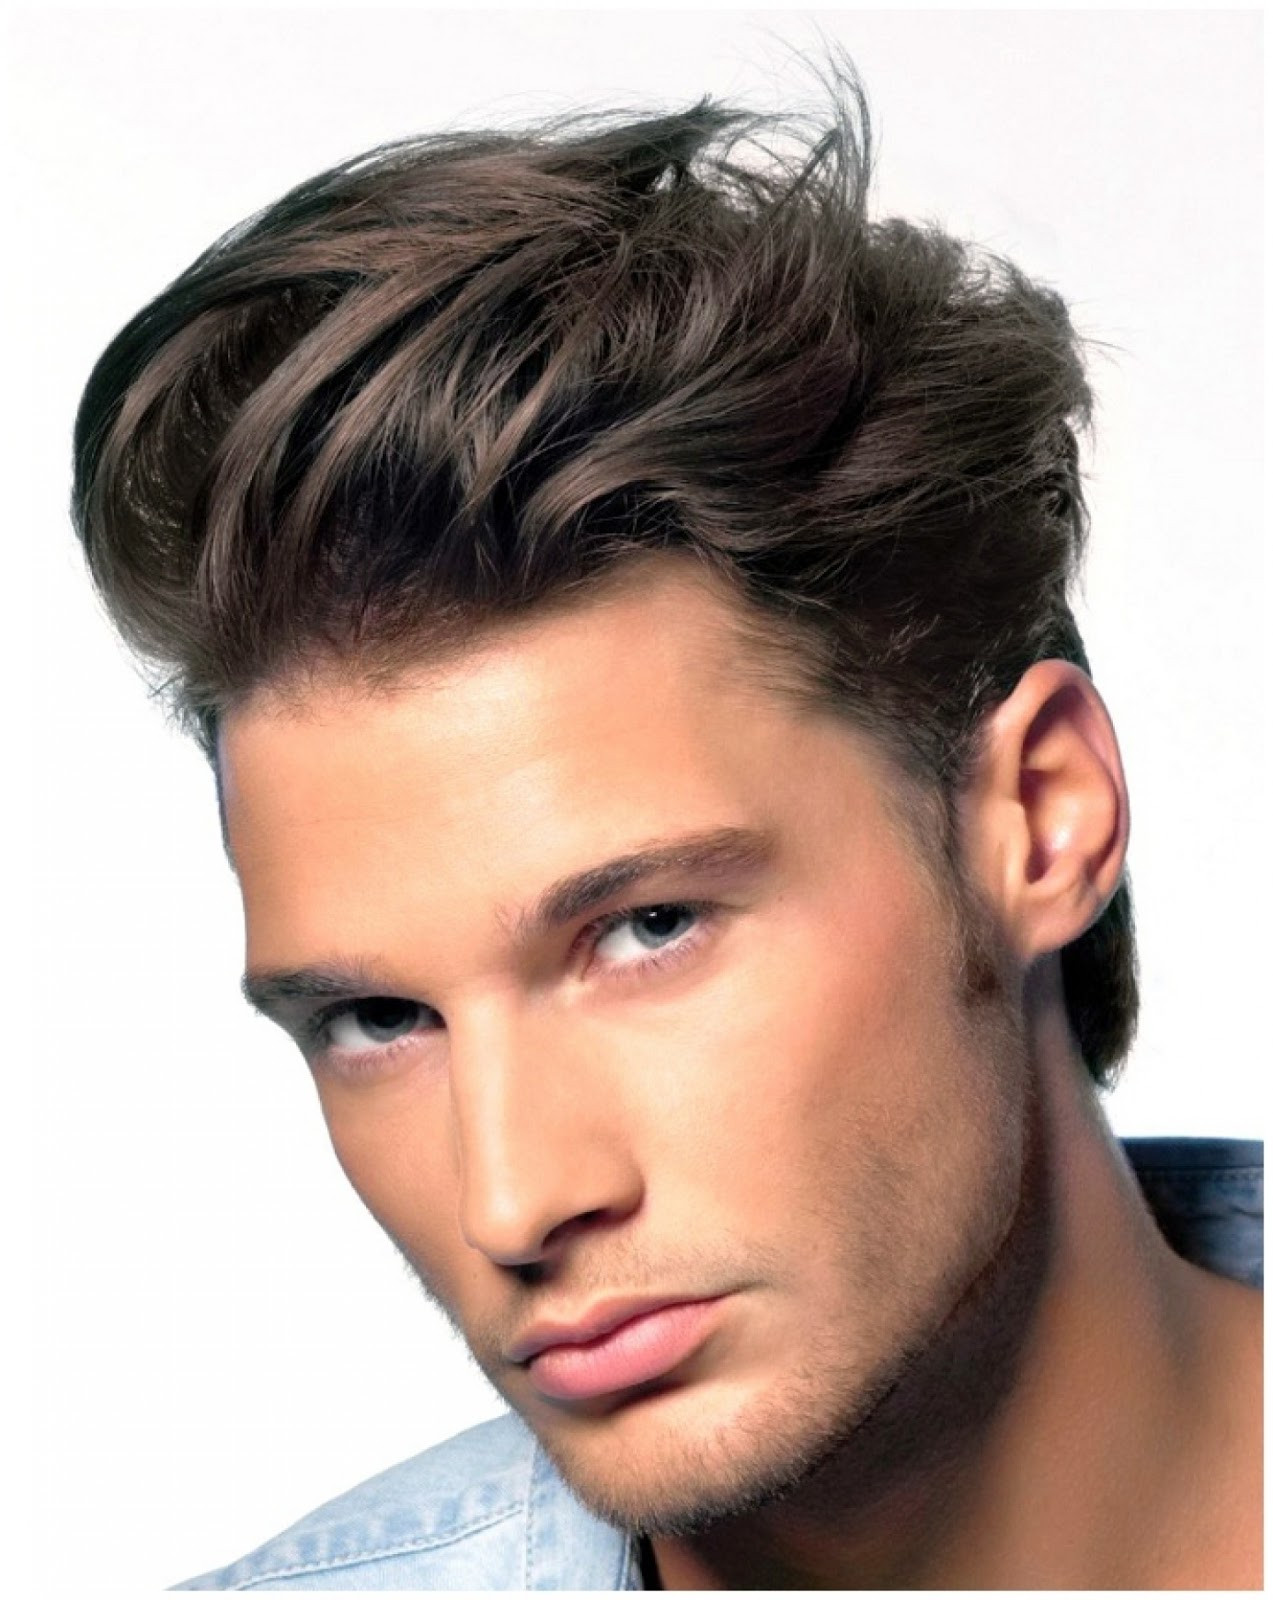 Undercut Hairstyle For Men  The Undercut e The Best Hairstyle For Men